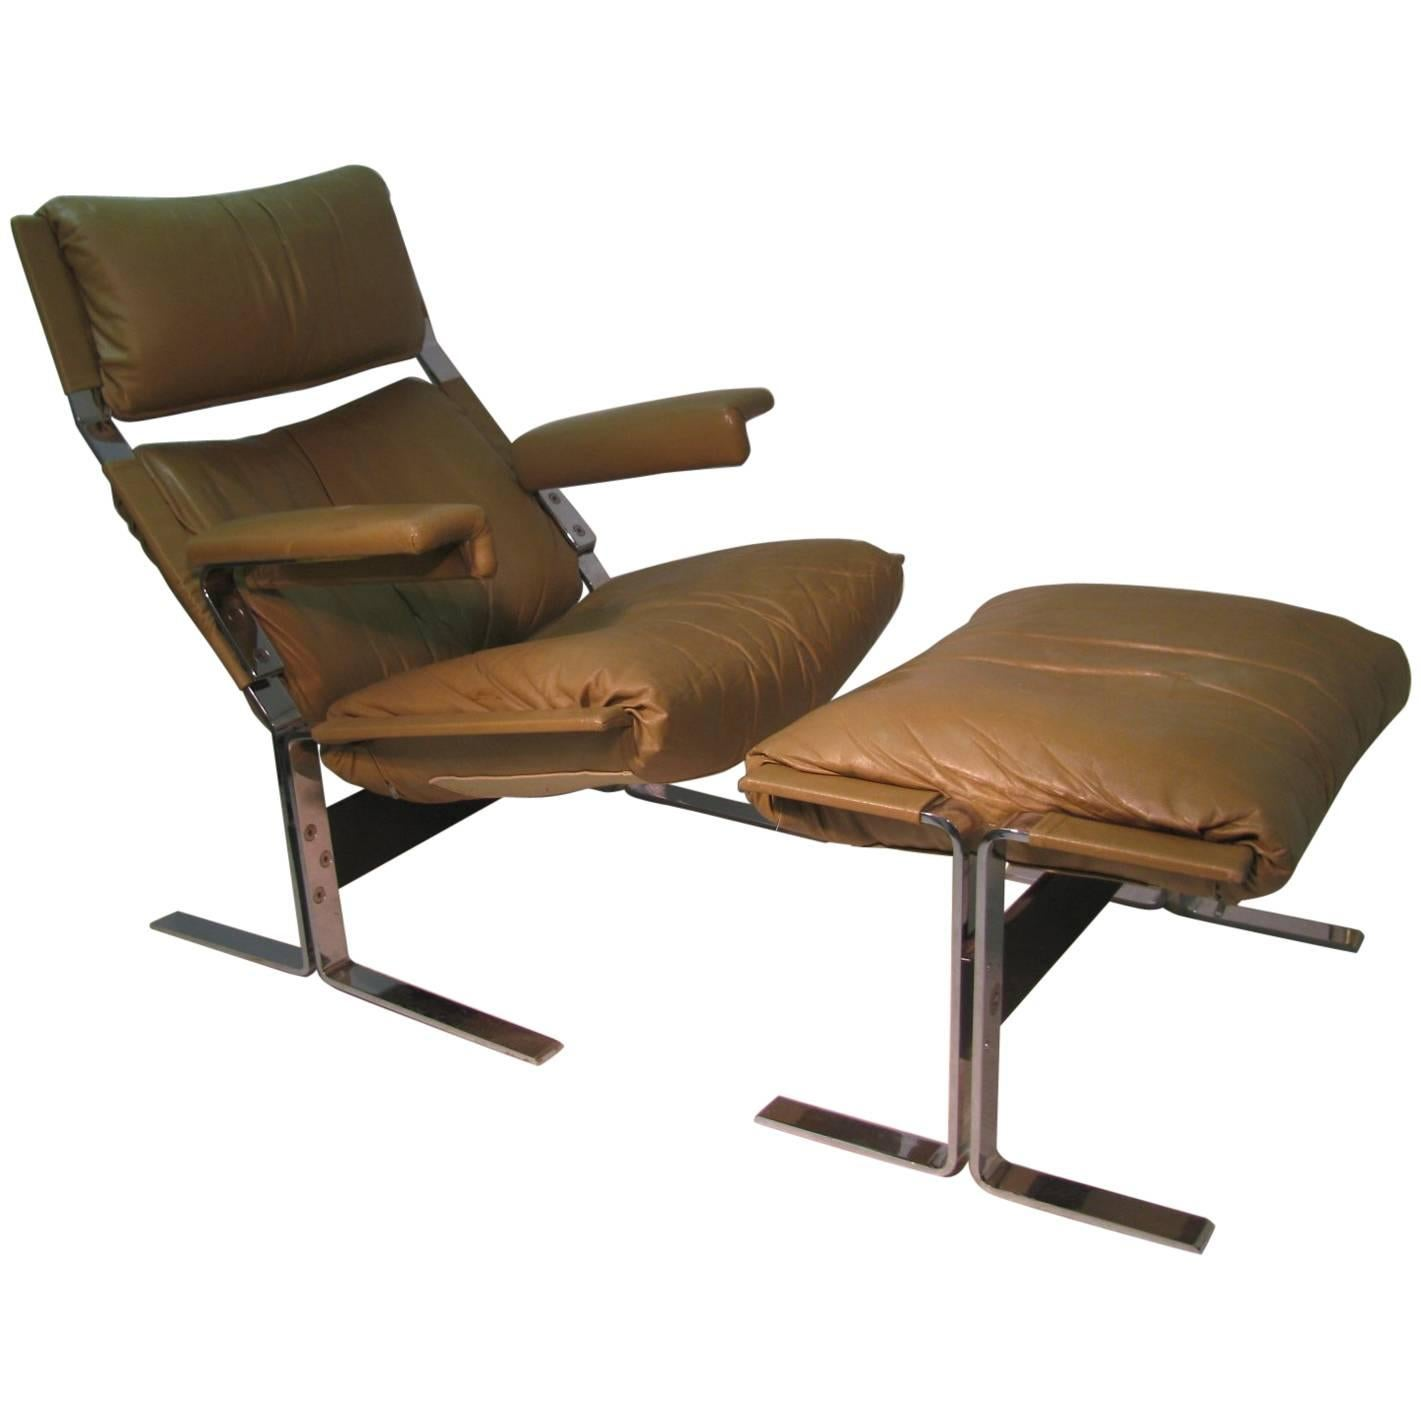 Mid Century Modern Leather Lounge Chair With Ottoman By Richard Hersberger  For Sale